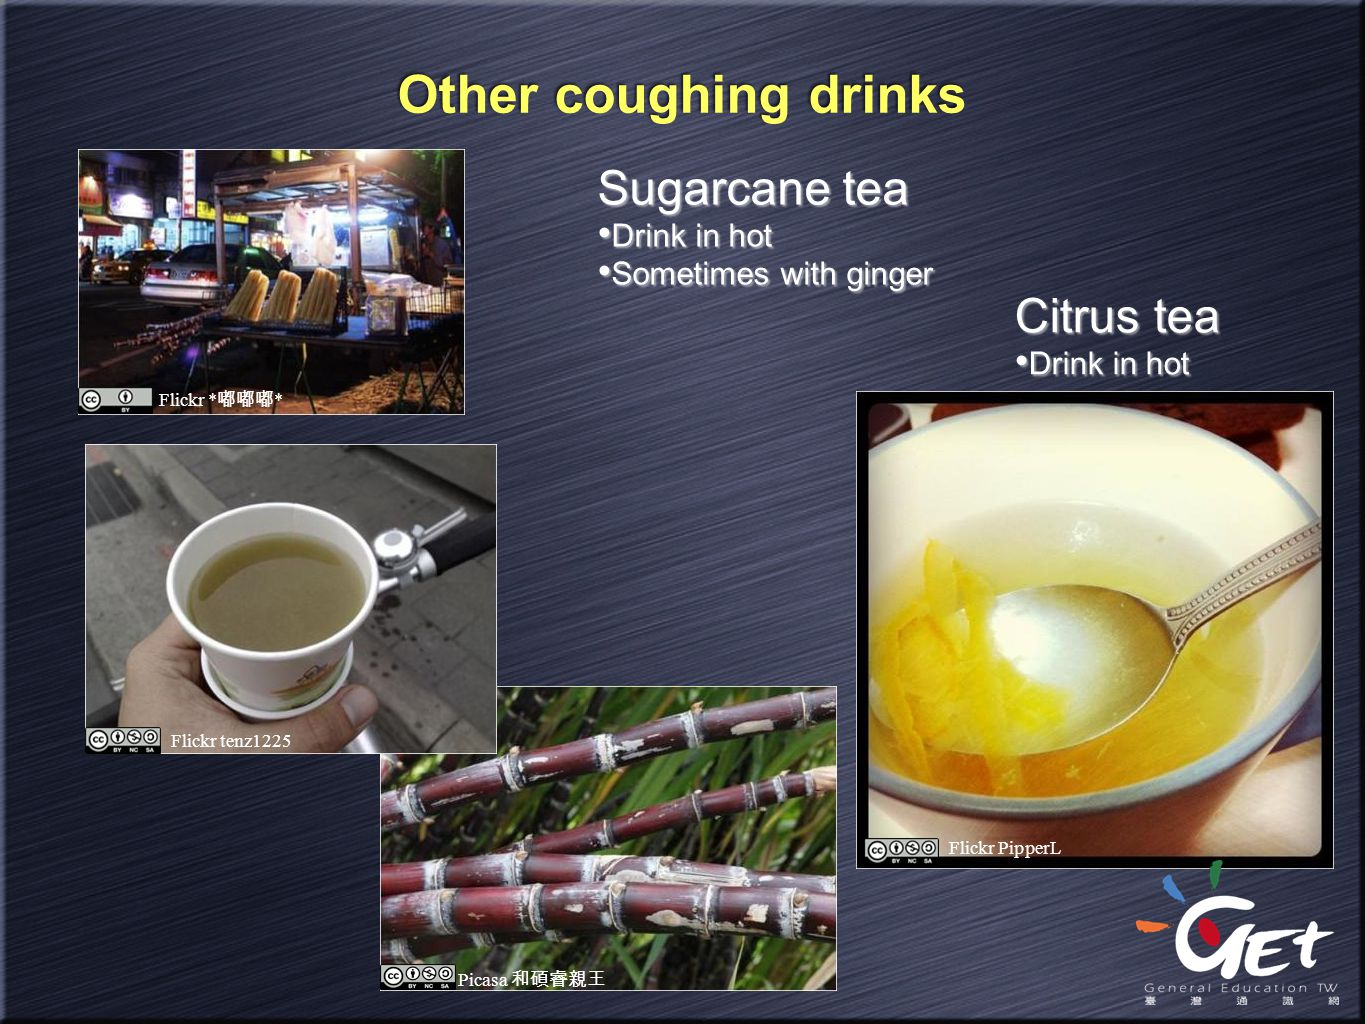 Other coughing drinks Sugarcane tea Citrus tea Drink in hot